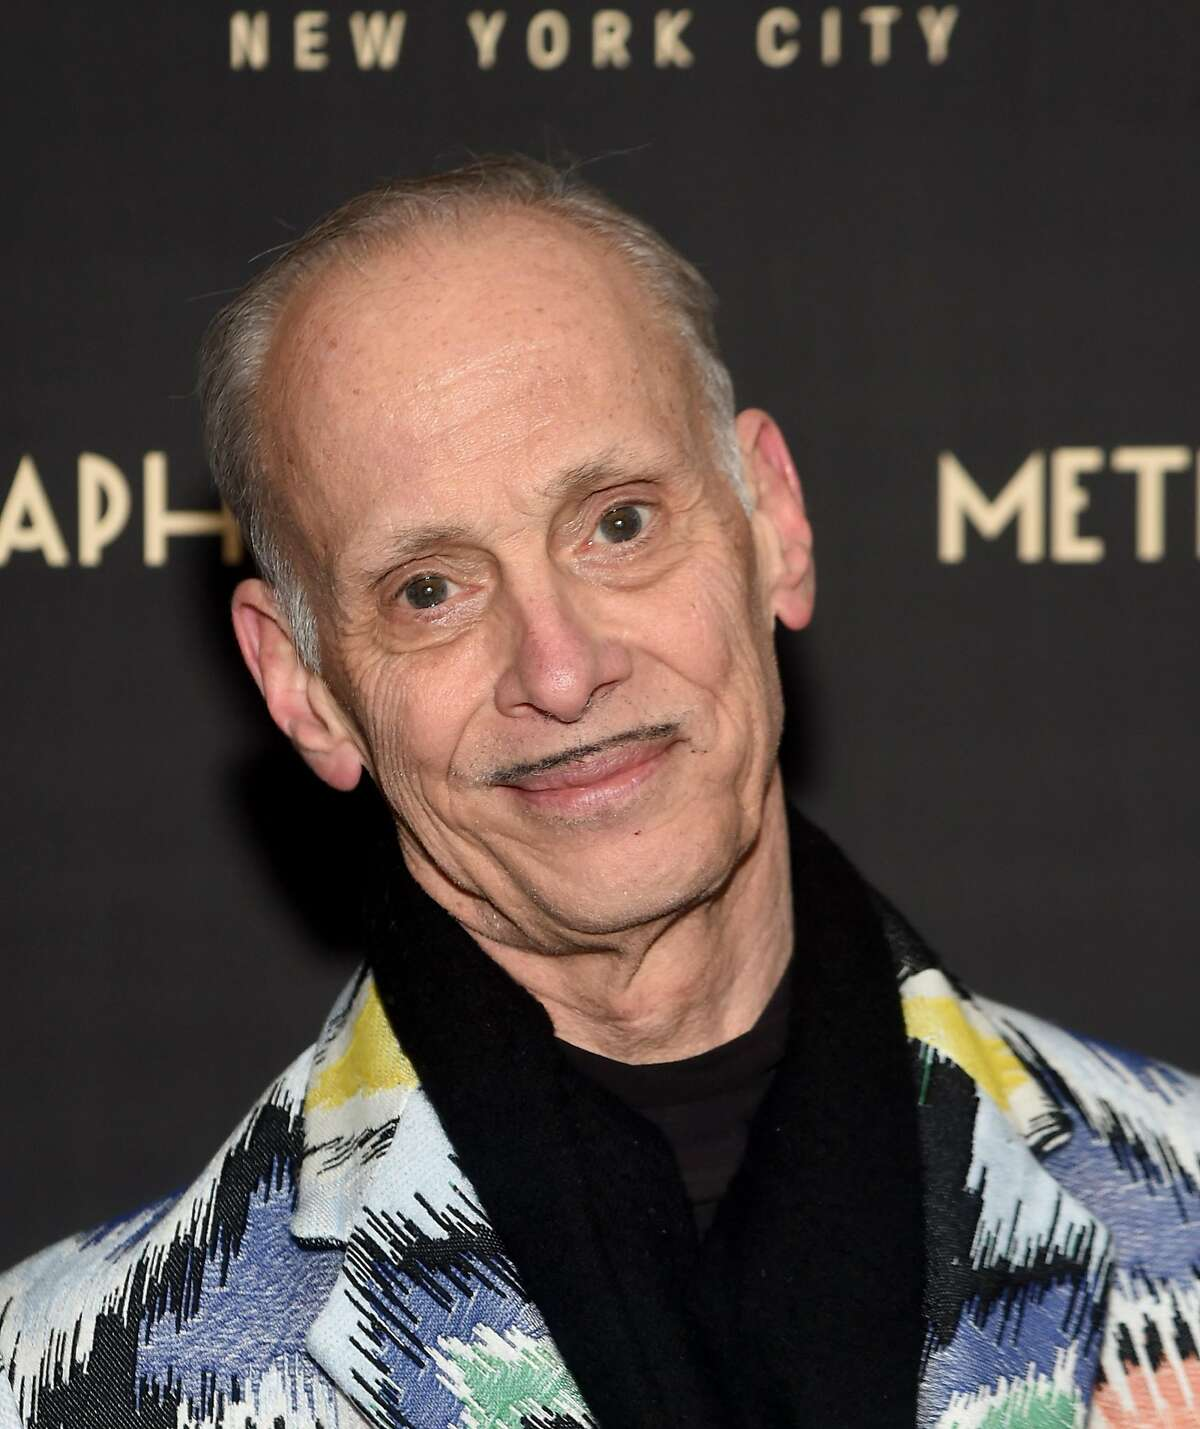 NEW YORK, NY - MARCH 02: John Waters attends the Metrograph opening night at Metrograph on March 2, 2016 in New York City. (Photo by Jamie McCarthy/Getty Images)